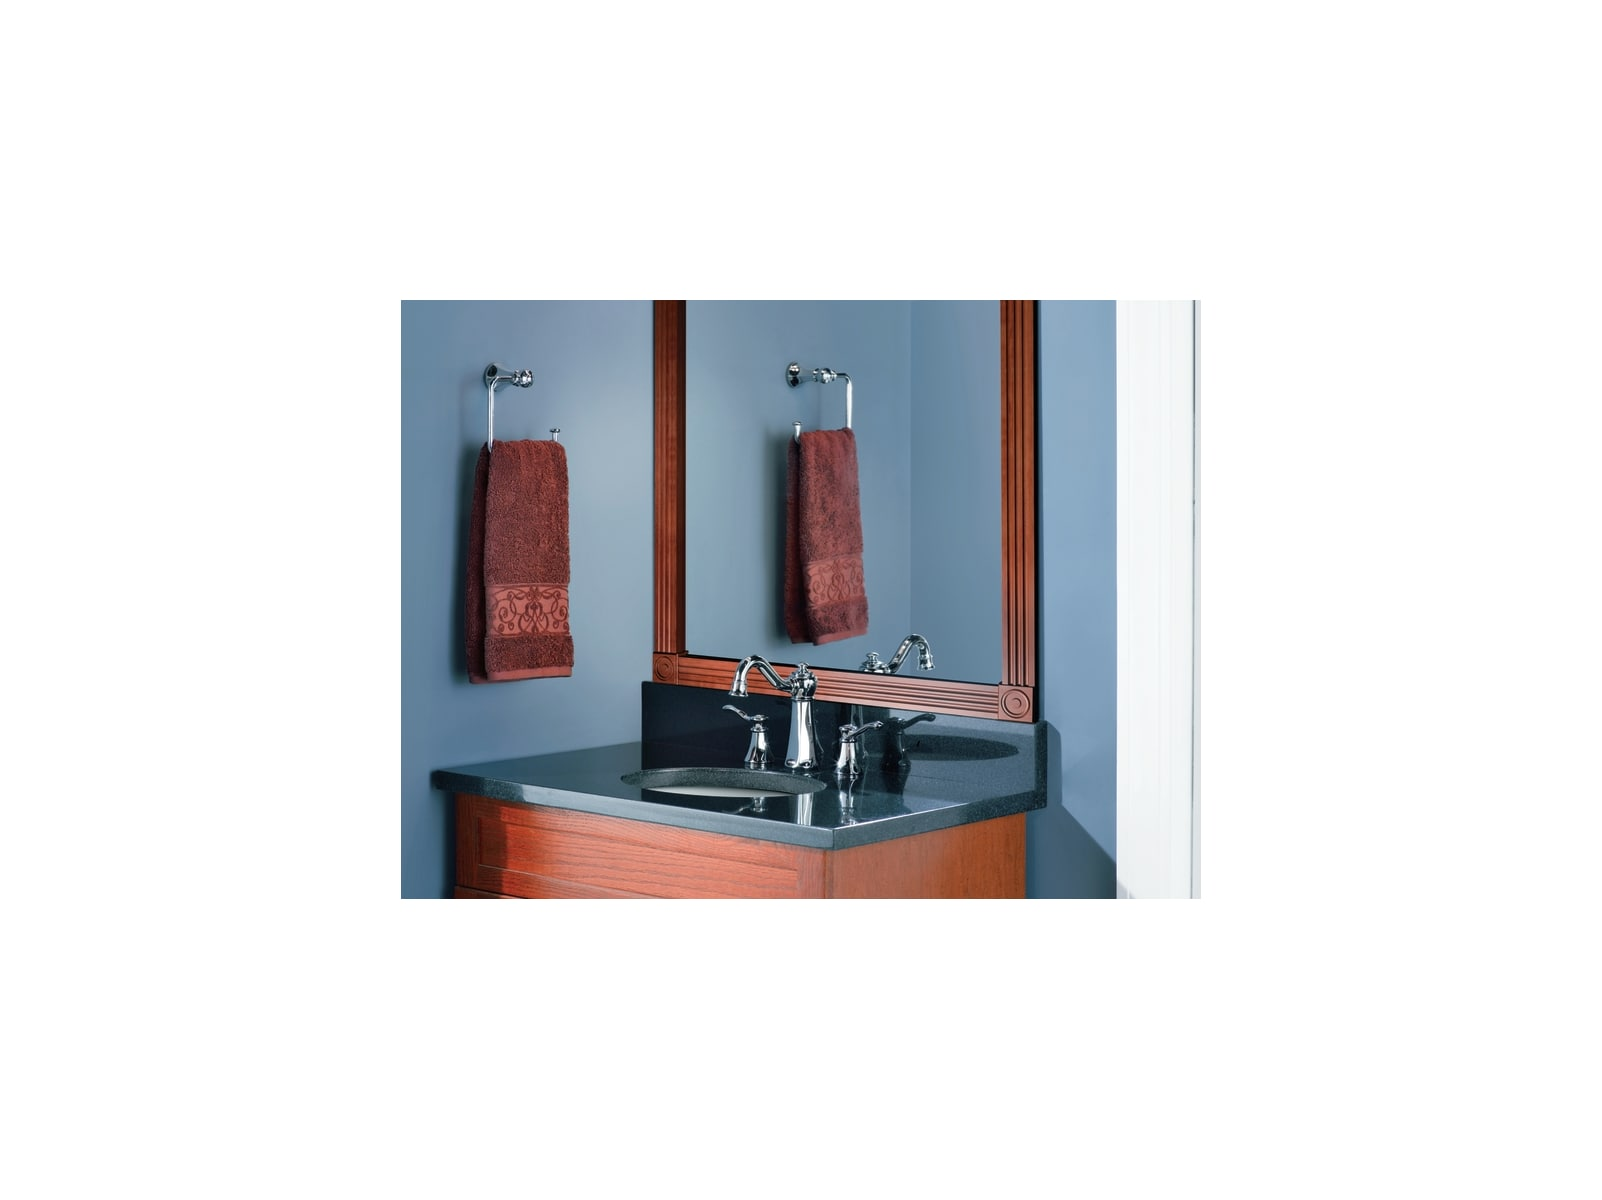 Moen T6305 Chrome Double Handle Widespread Bathroom Faucet from the ...